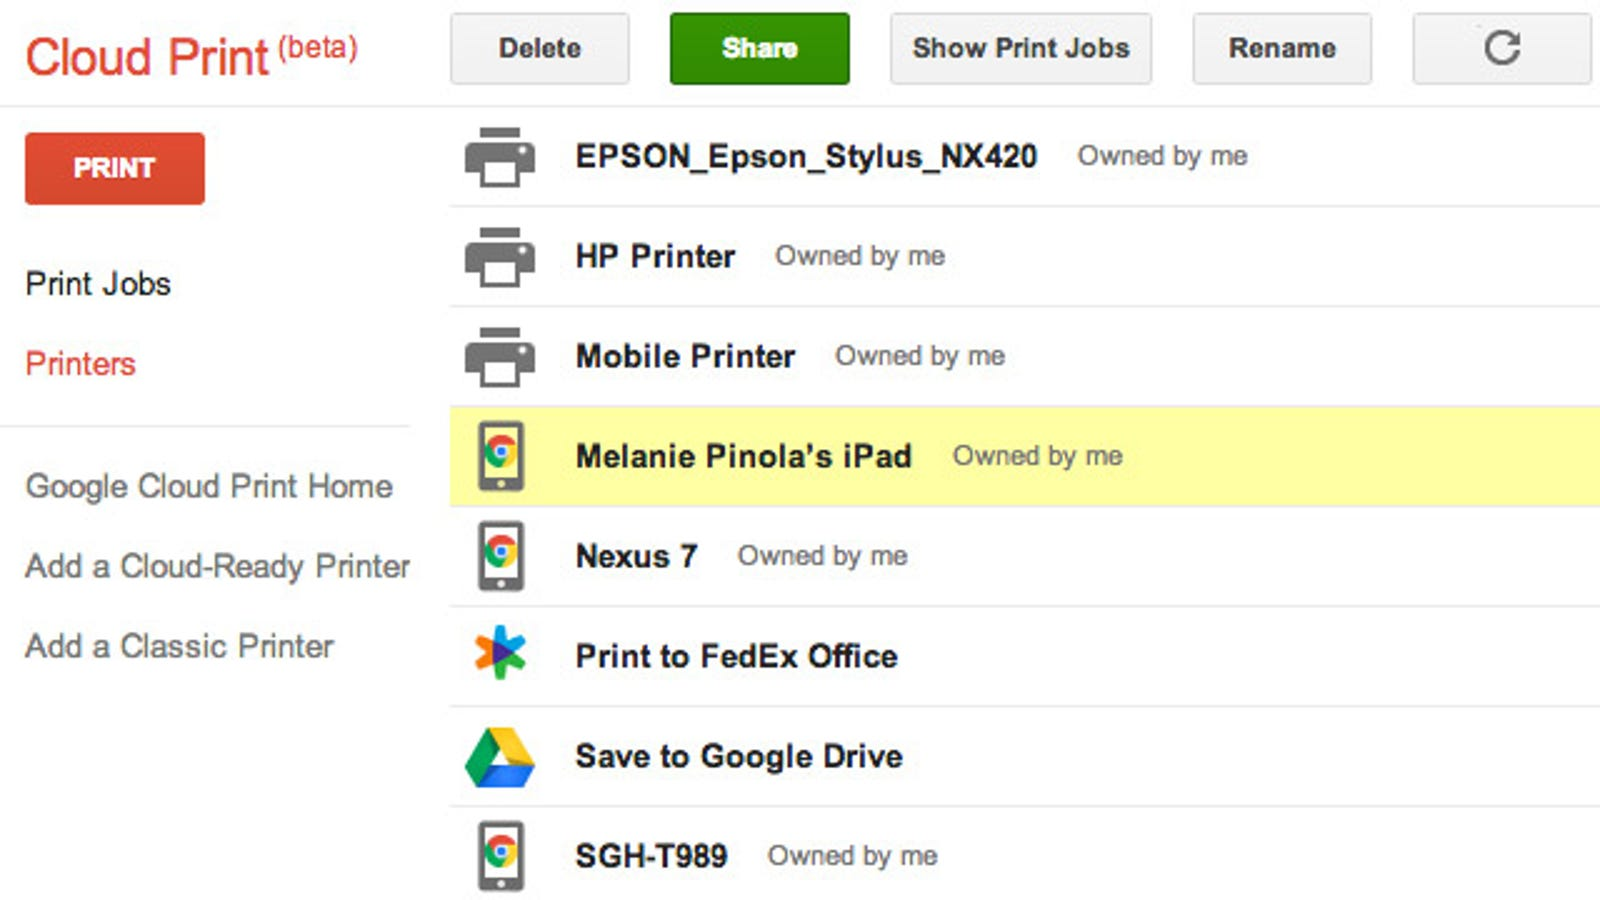 Use Google Cloud Print to Quickly Save Files as PDFs on Your Mobile